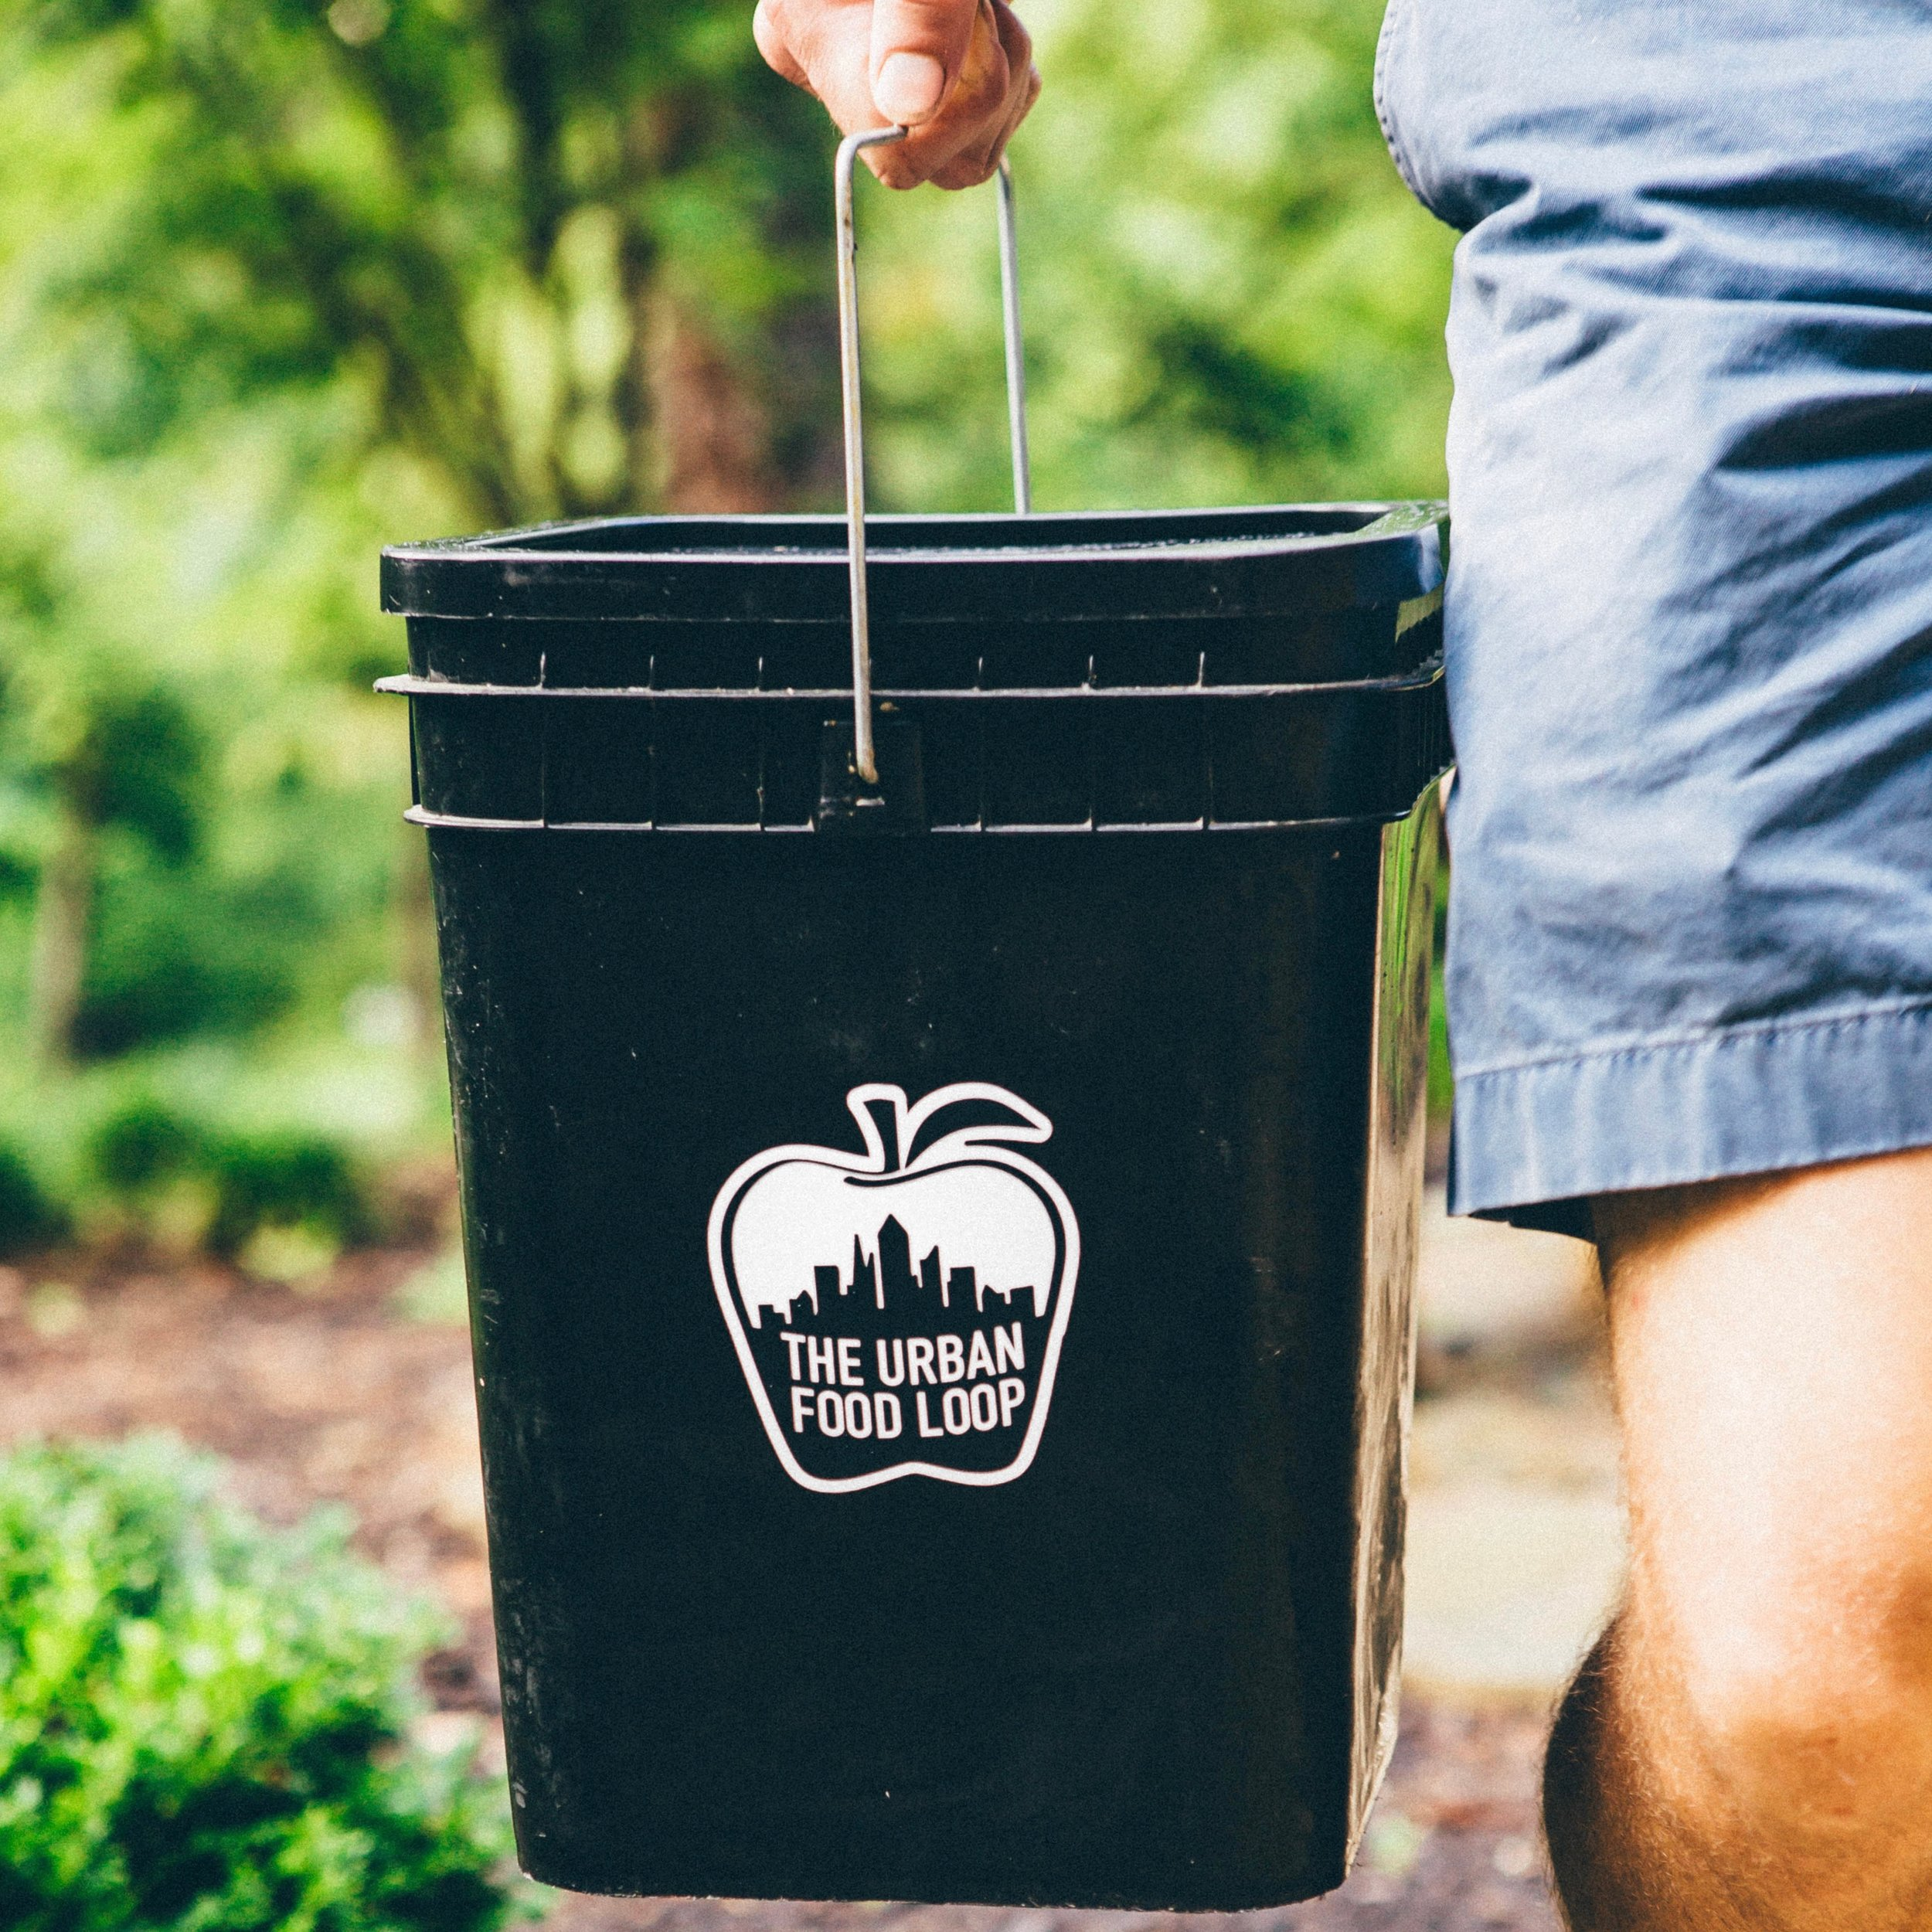 1. sign up   - Our team will deliver a countertop compost container and up to two outdoor composting bins.